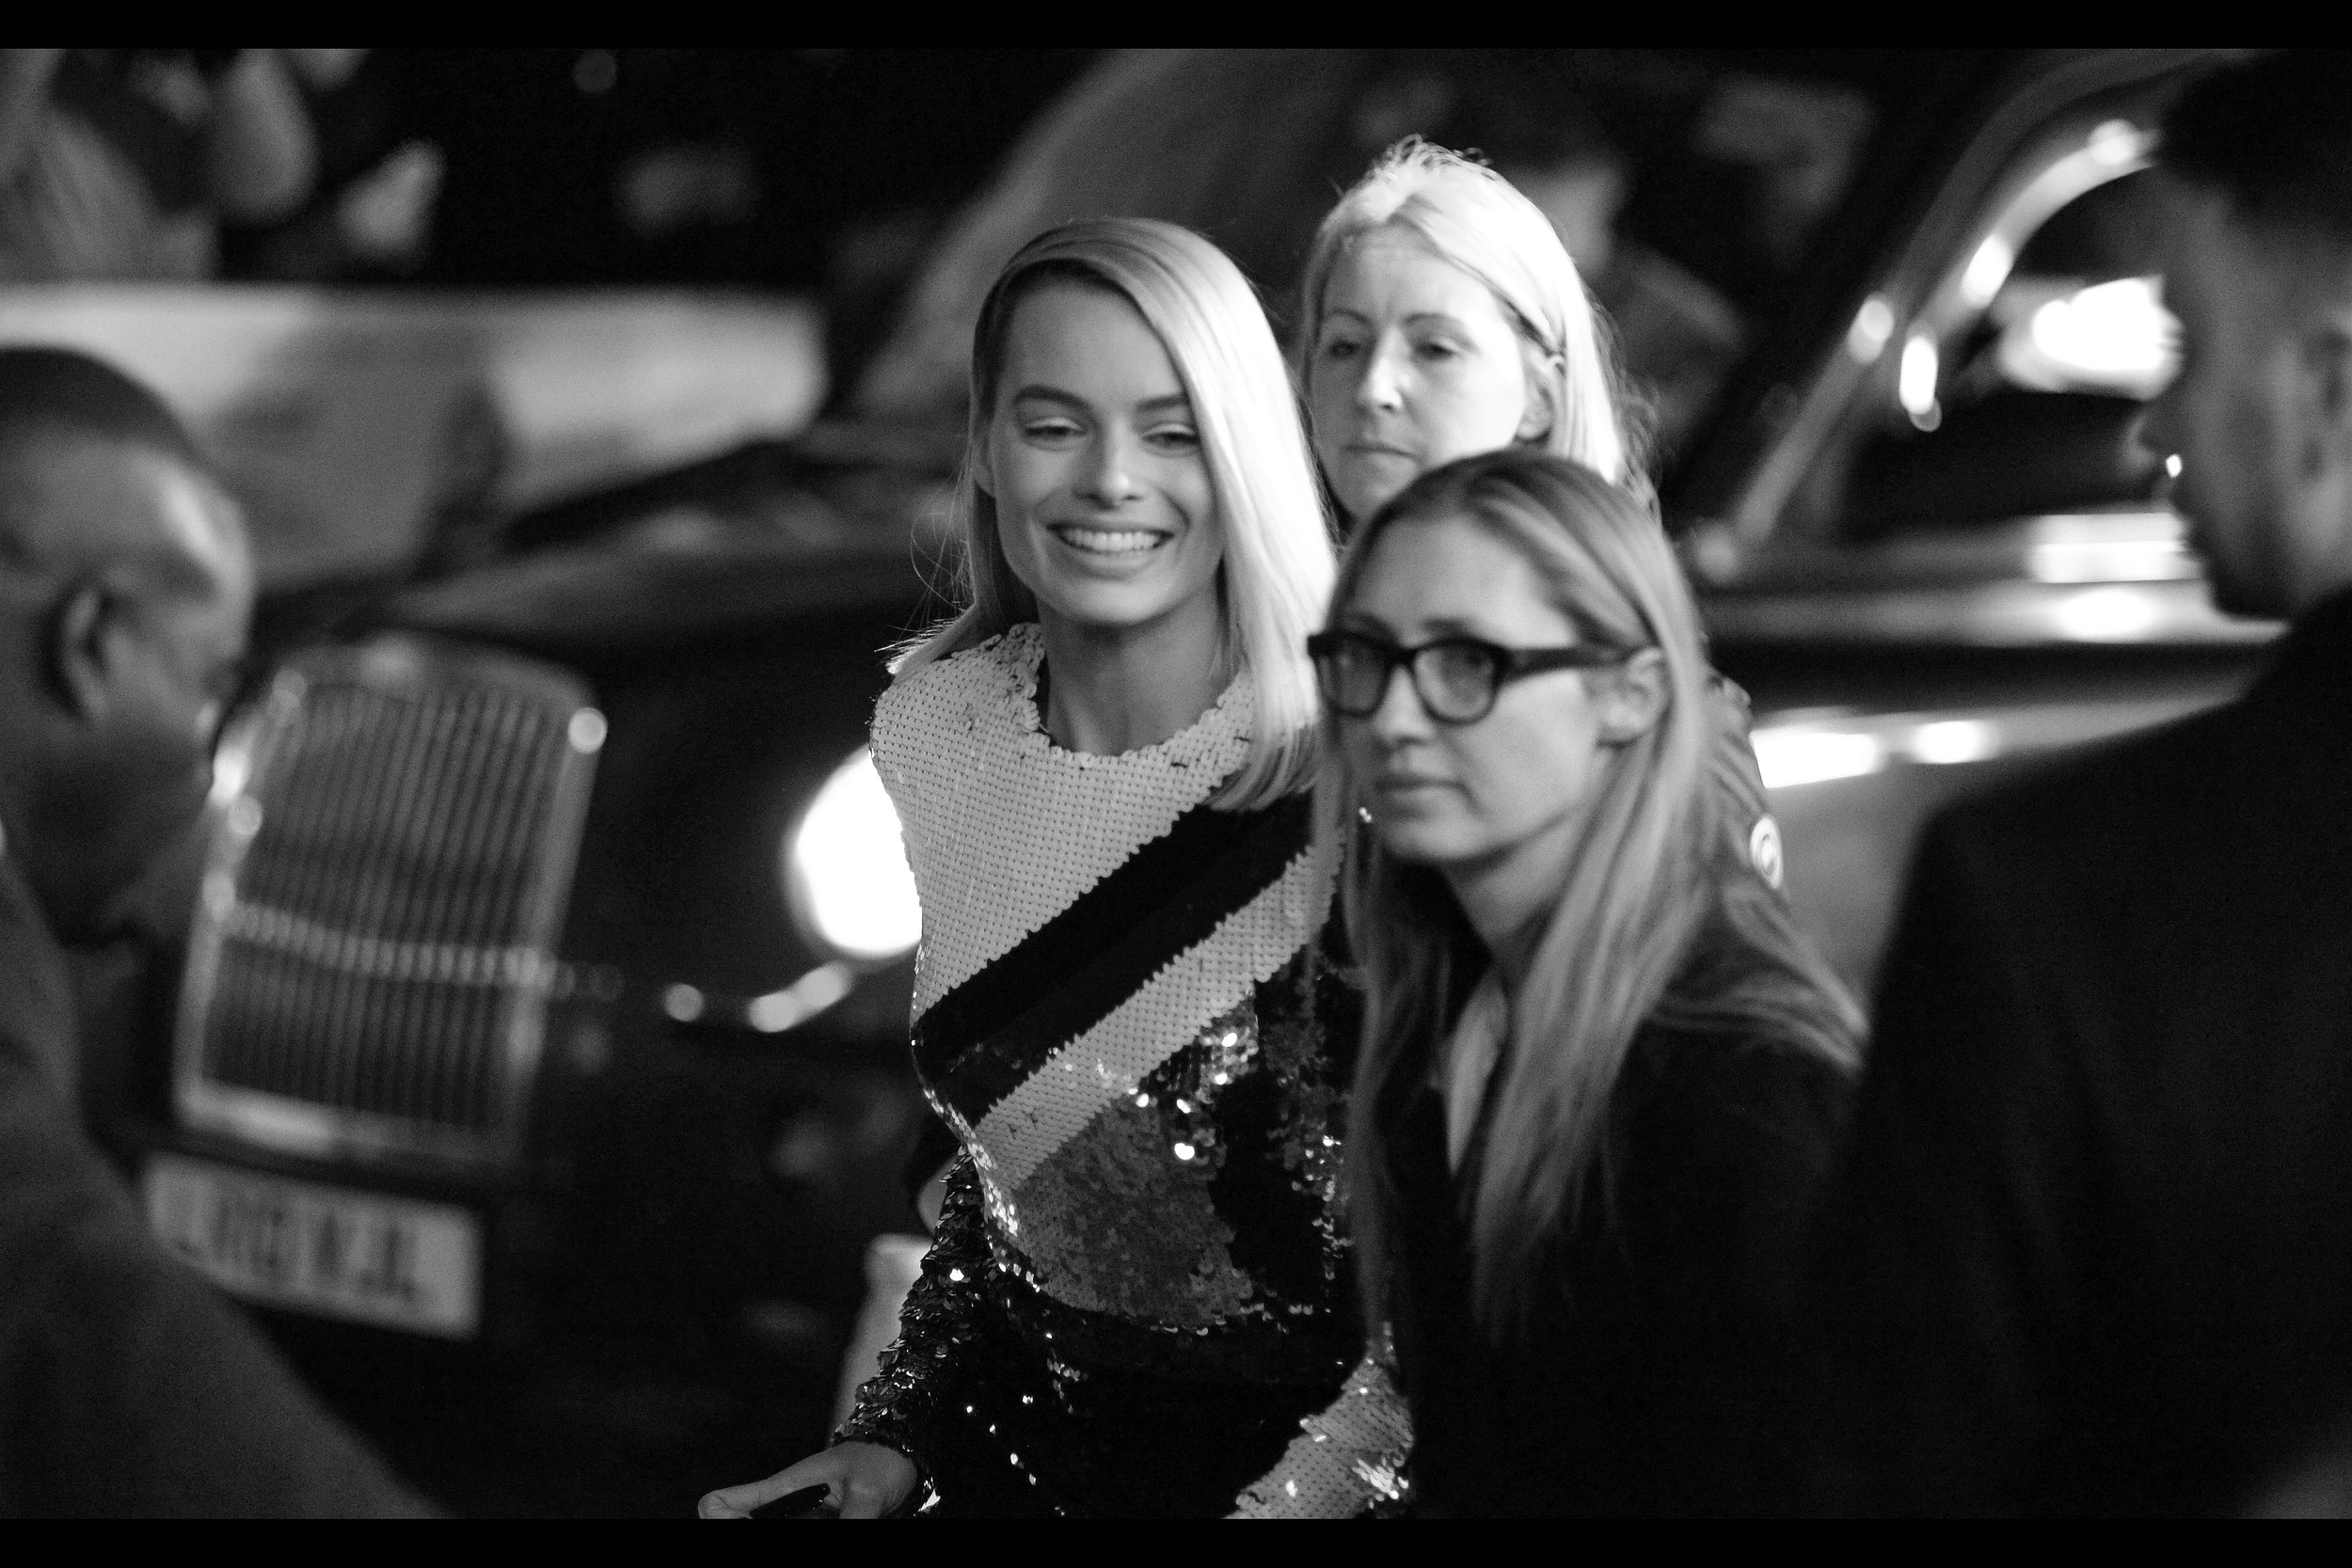 """""""I'm guessing none of you brough   """"Z for Zachariah"""" stuff for me to sign?""""  It's Australia's own Margot Robbie - I've been fortunate enough to photograph her at premieres ranging from    """"Suicide Squad""""    and    """"Focus""""    (both with Will Smith), to """"   Legend of Tarzan   """" and    """"Goodbye Christopher Robin""""   ."""